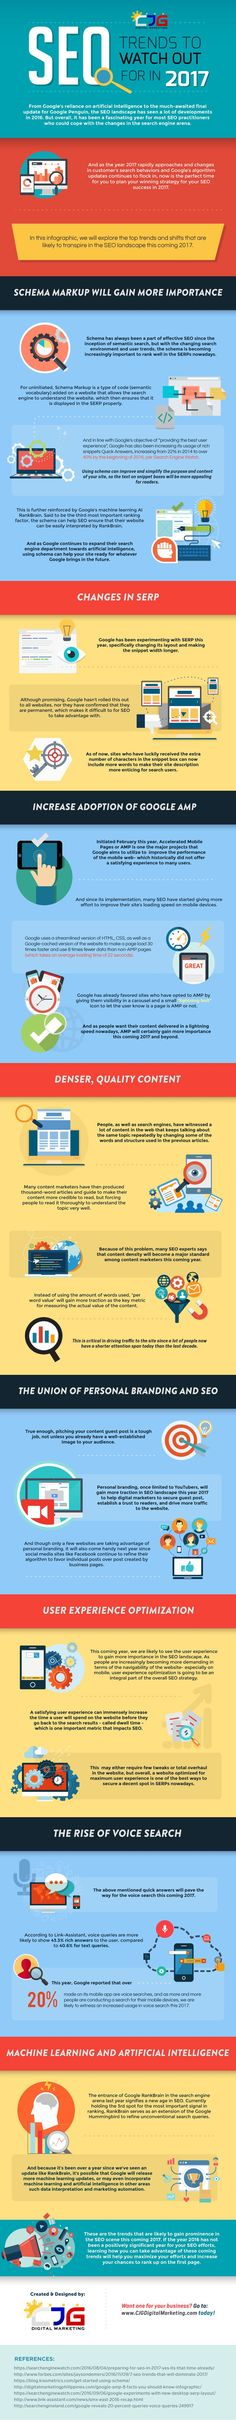 The Top 8 SEO Trends in 2017 [Infographic]